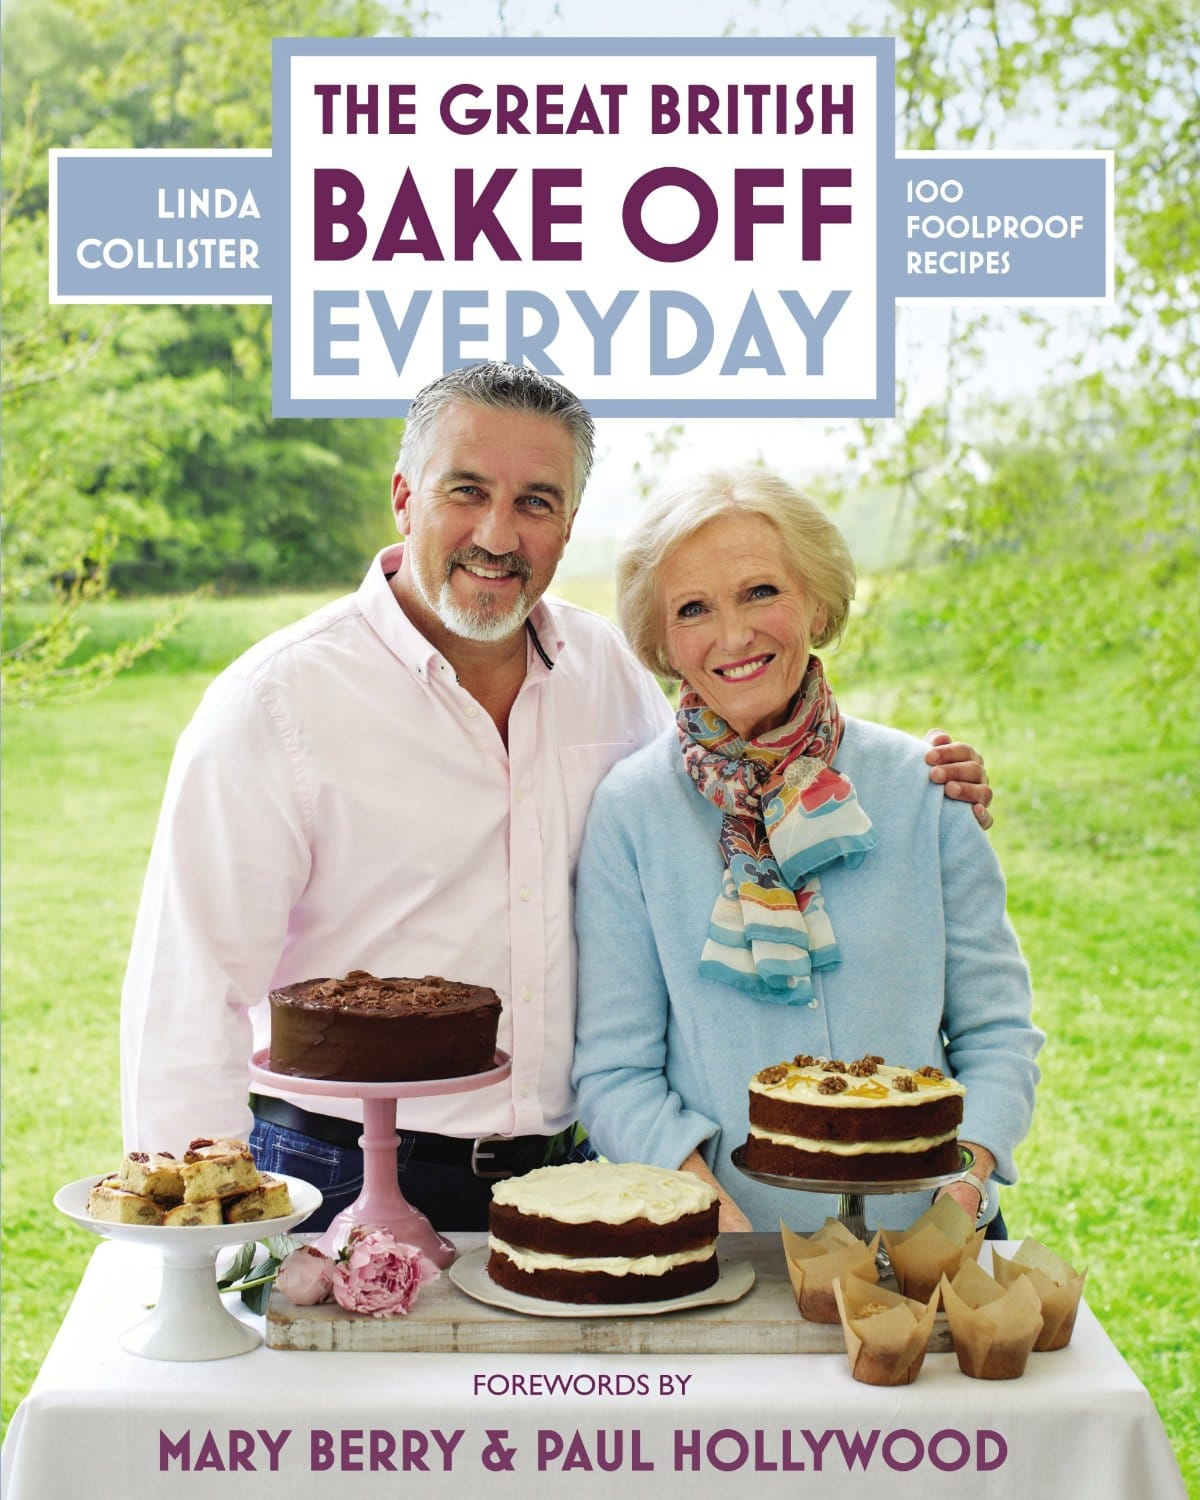 Win a copy of 'The Great British Bake Off Everyday'